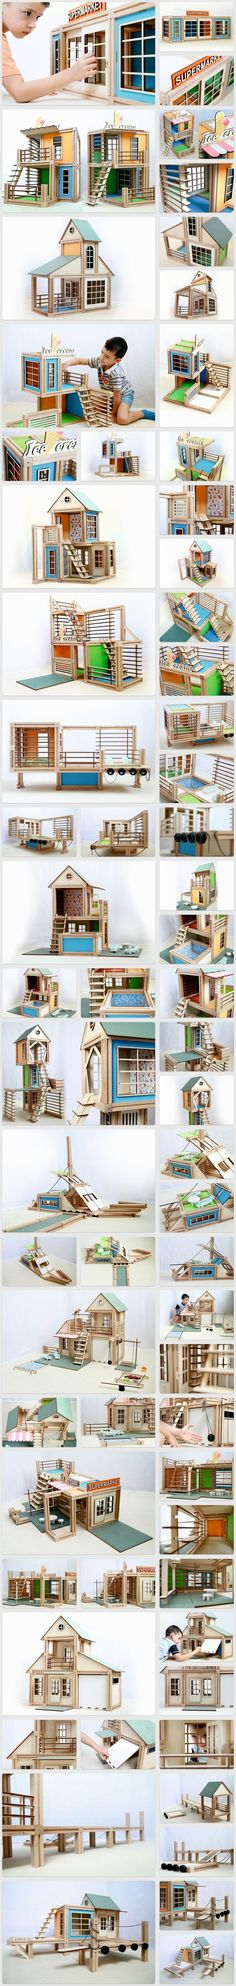 These wood building blocks are stunning! So many possibilities and still looking like real doll houses! No wonder they've been awarded! WoodyMac - Magnetic Building Blocks by WoodyMac, Inc. — Kickstarter